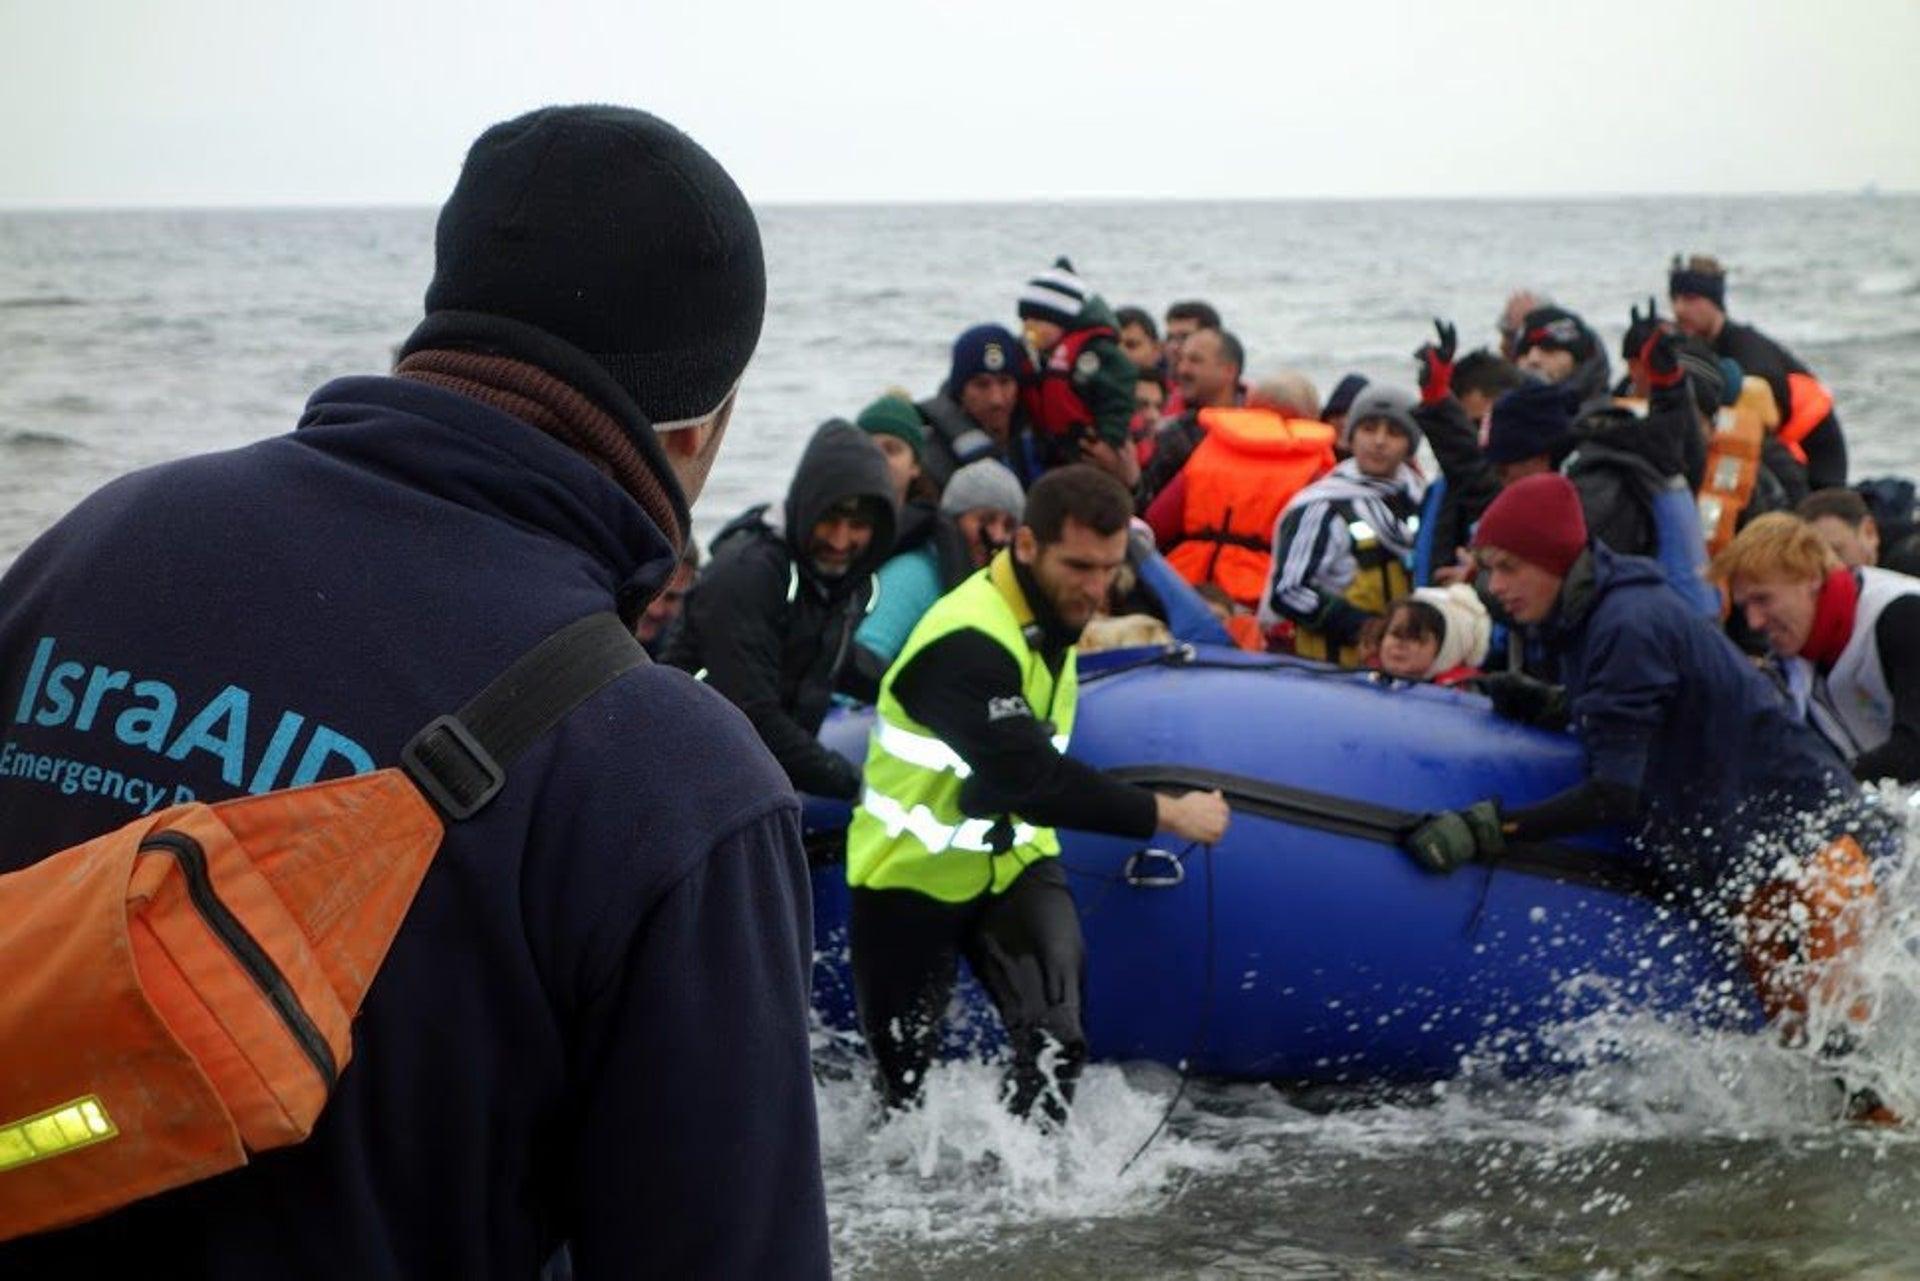 IsraAID and other volunteers receiving a boatload of refugees arriving in Lesbos, Greece.